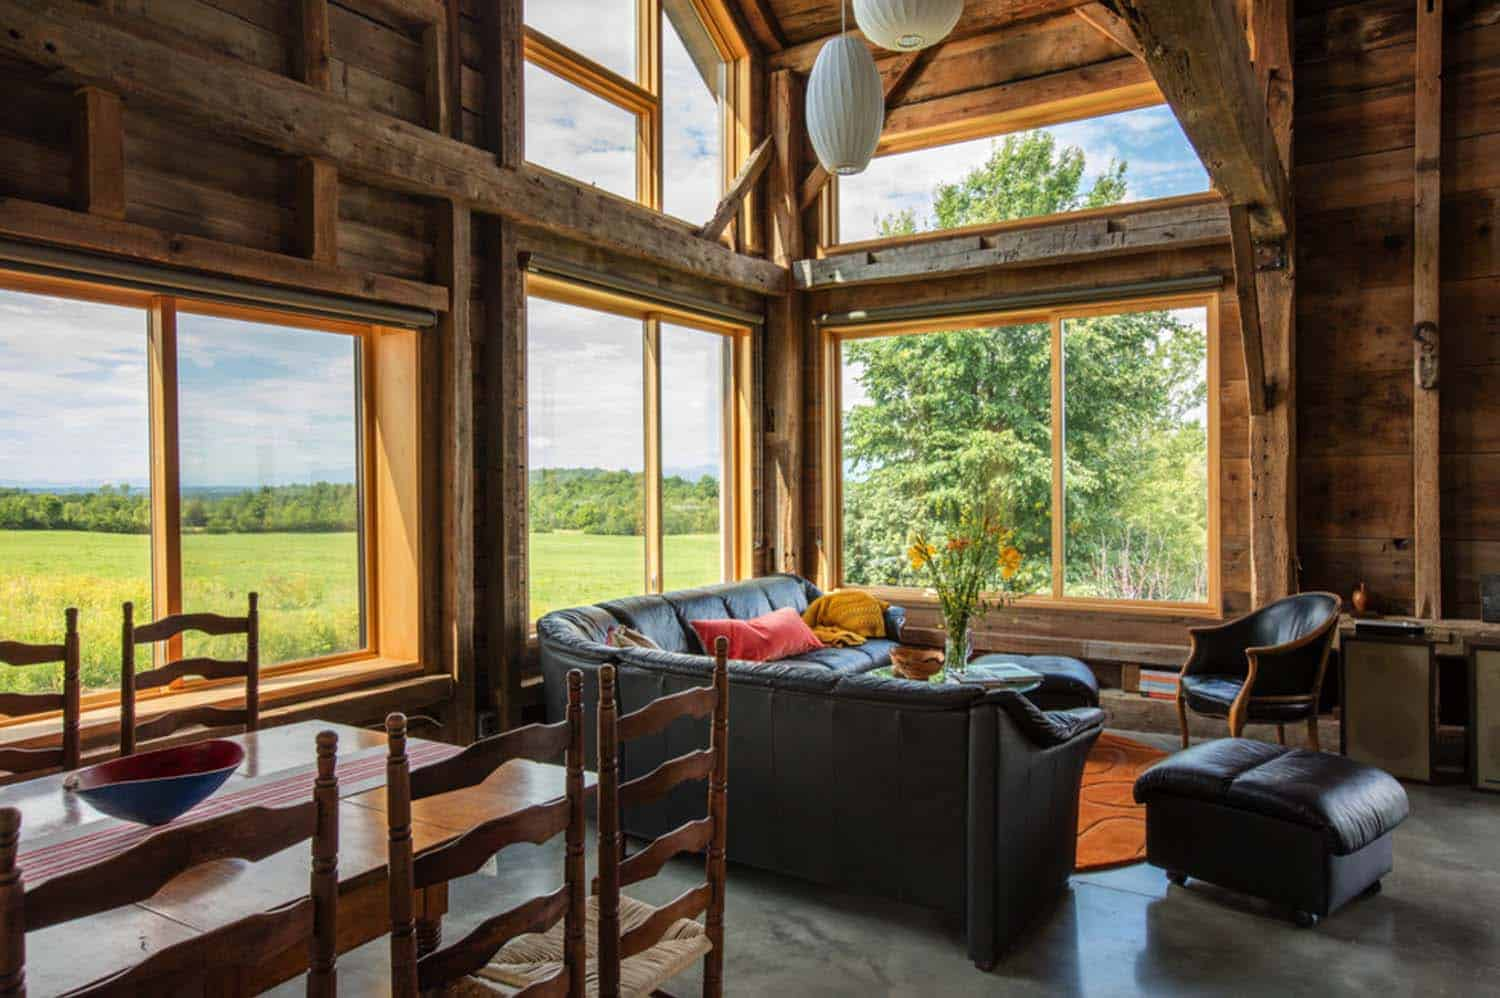 Rustic Barn Guesthouse-Joan Heaton Architects-09-1 Kindesign